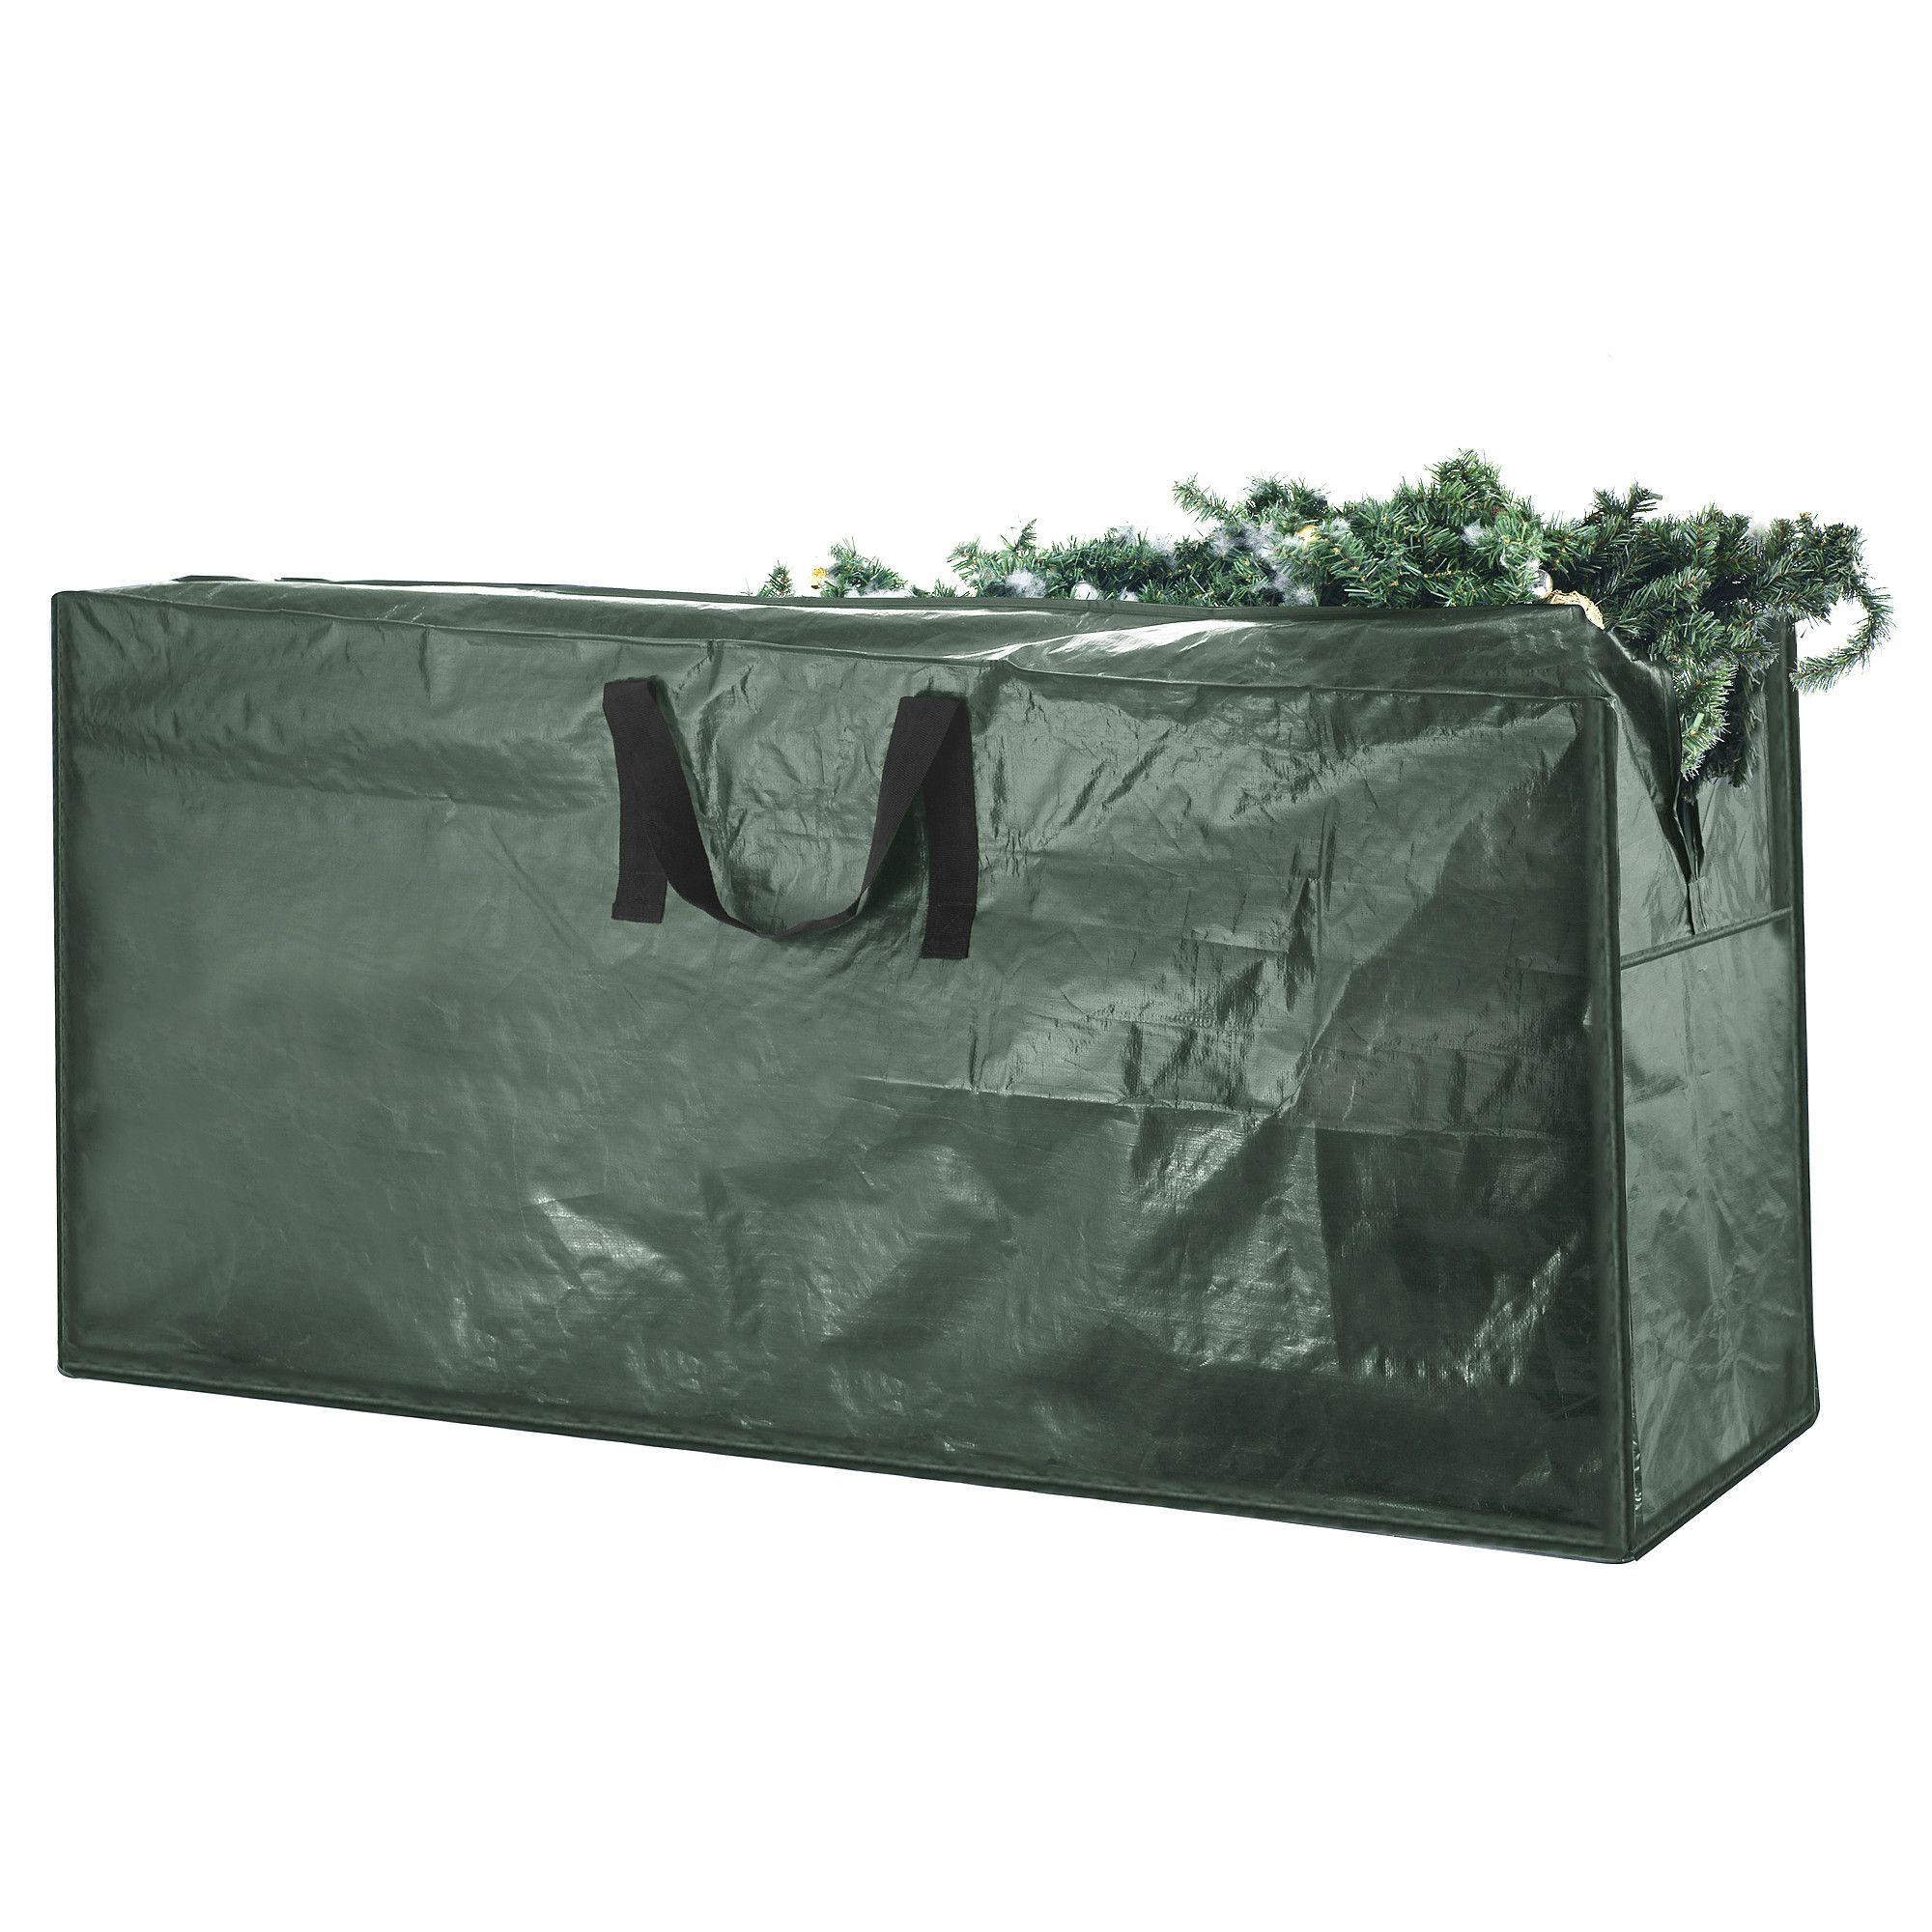 Christmas Tree Bag Holiday Dark Green Extra Large For 9 Foot Folds Flat When Not In Use Designed To Protect Your From Damage Dust And Moisture